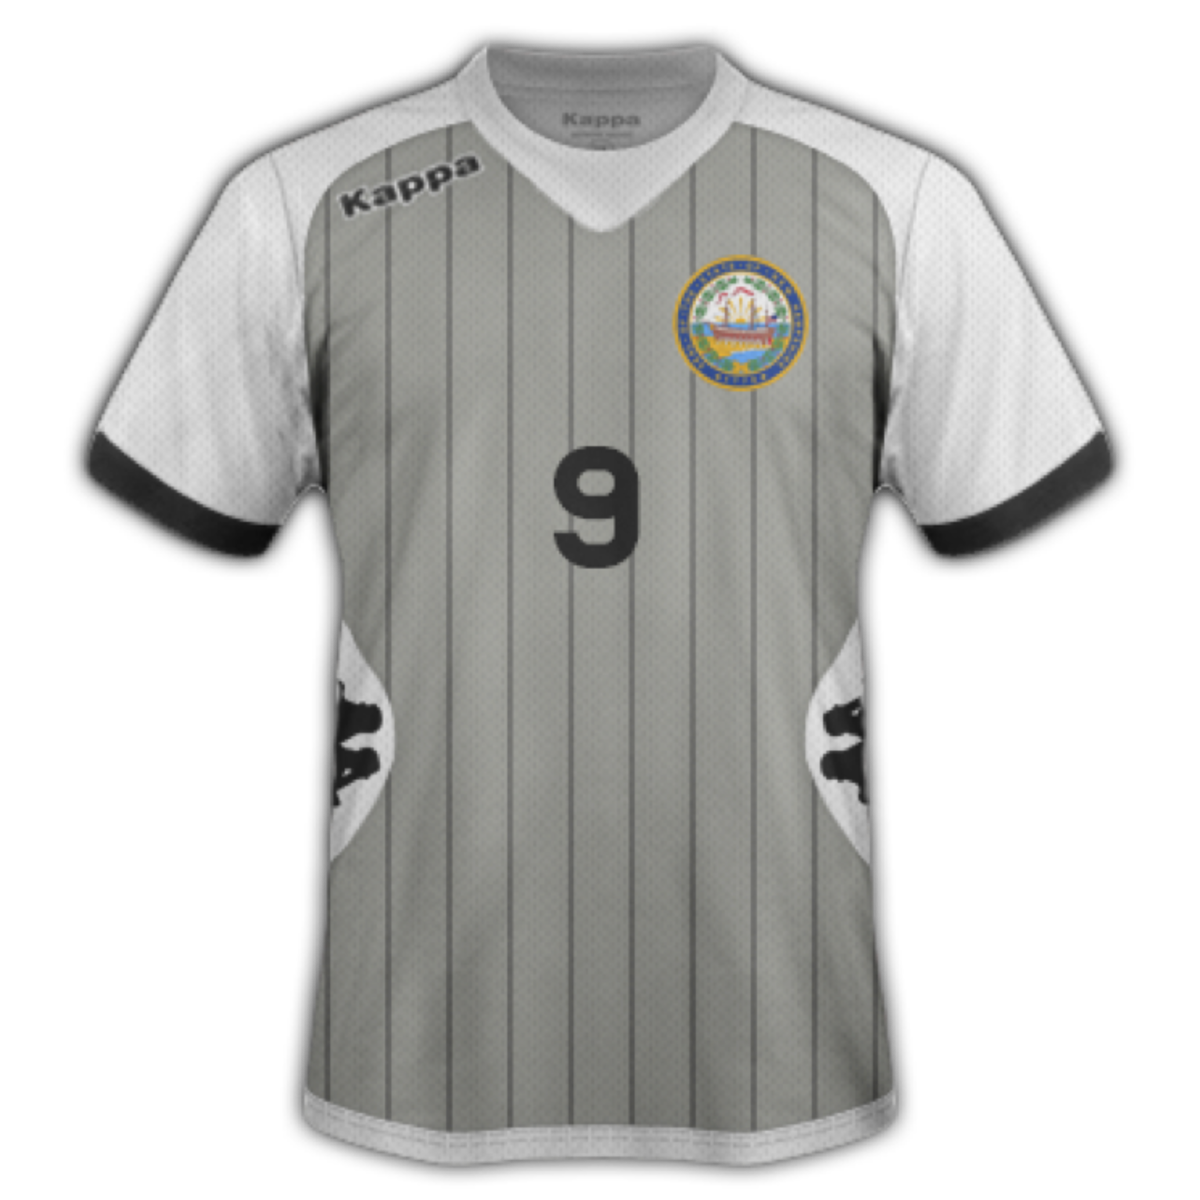 061 - New Hampshire Away